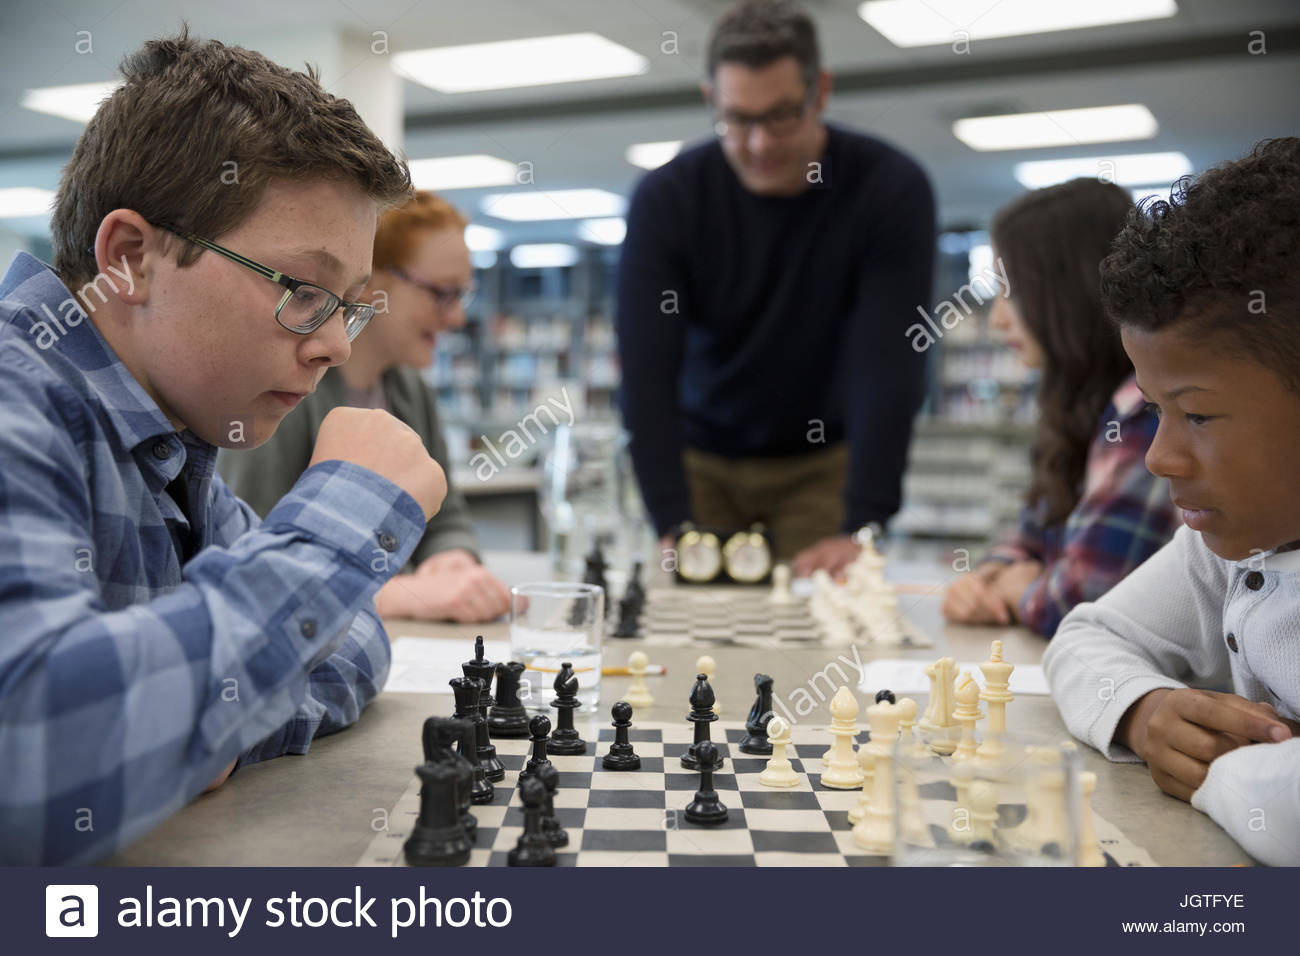 Focused boy middle school students playing chess in chess club - Stock Image